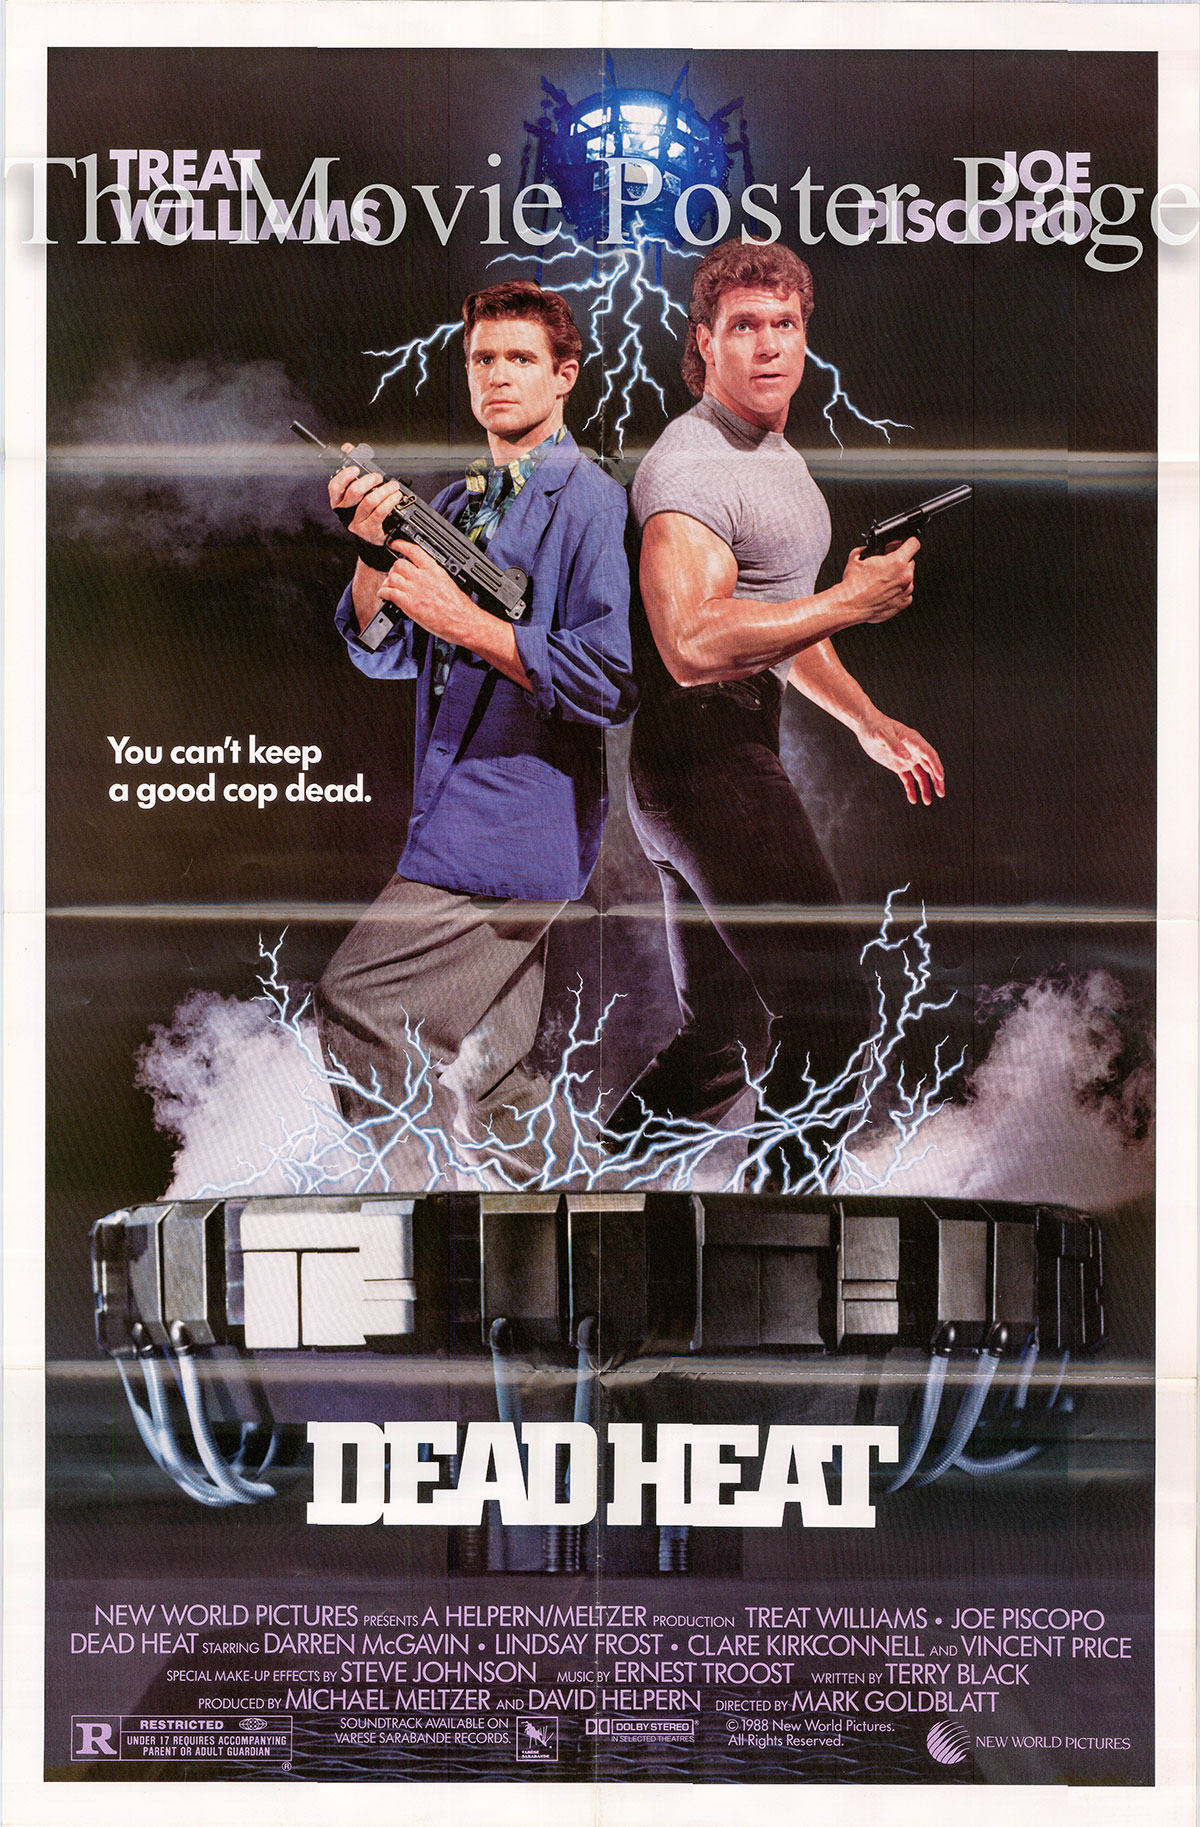 Pictured is a US one-sheet promotional poster for the 1988 Mark Goldblatt film Deat Heat starring Treat Williams.